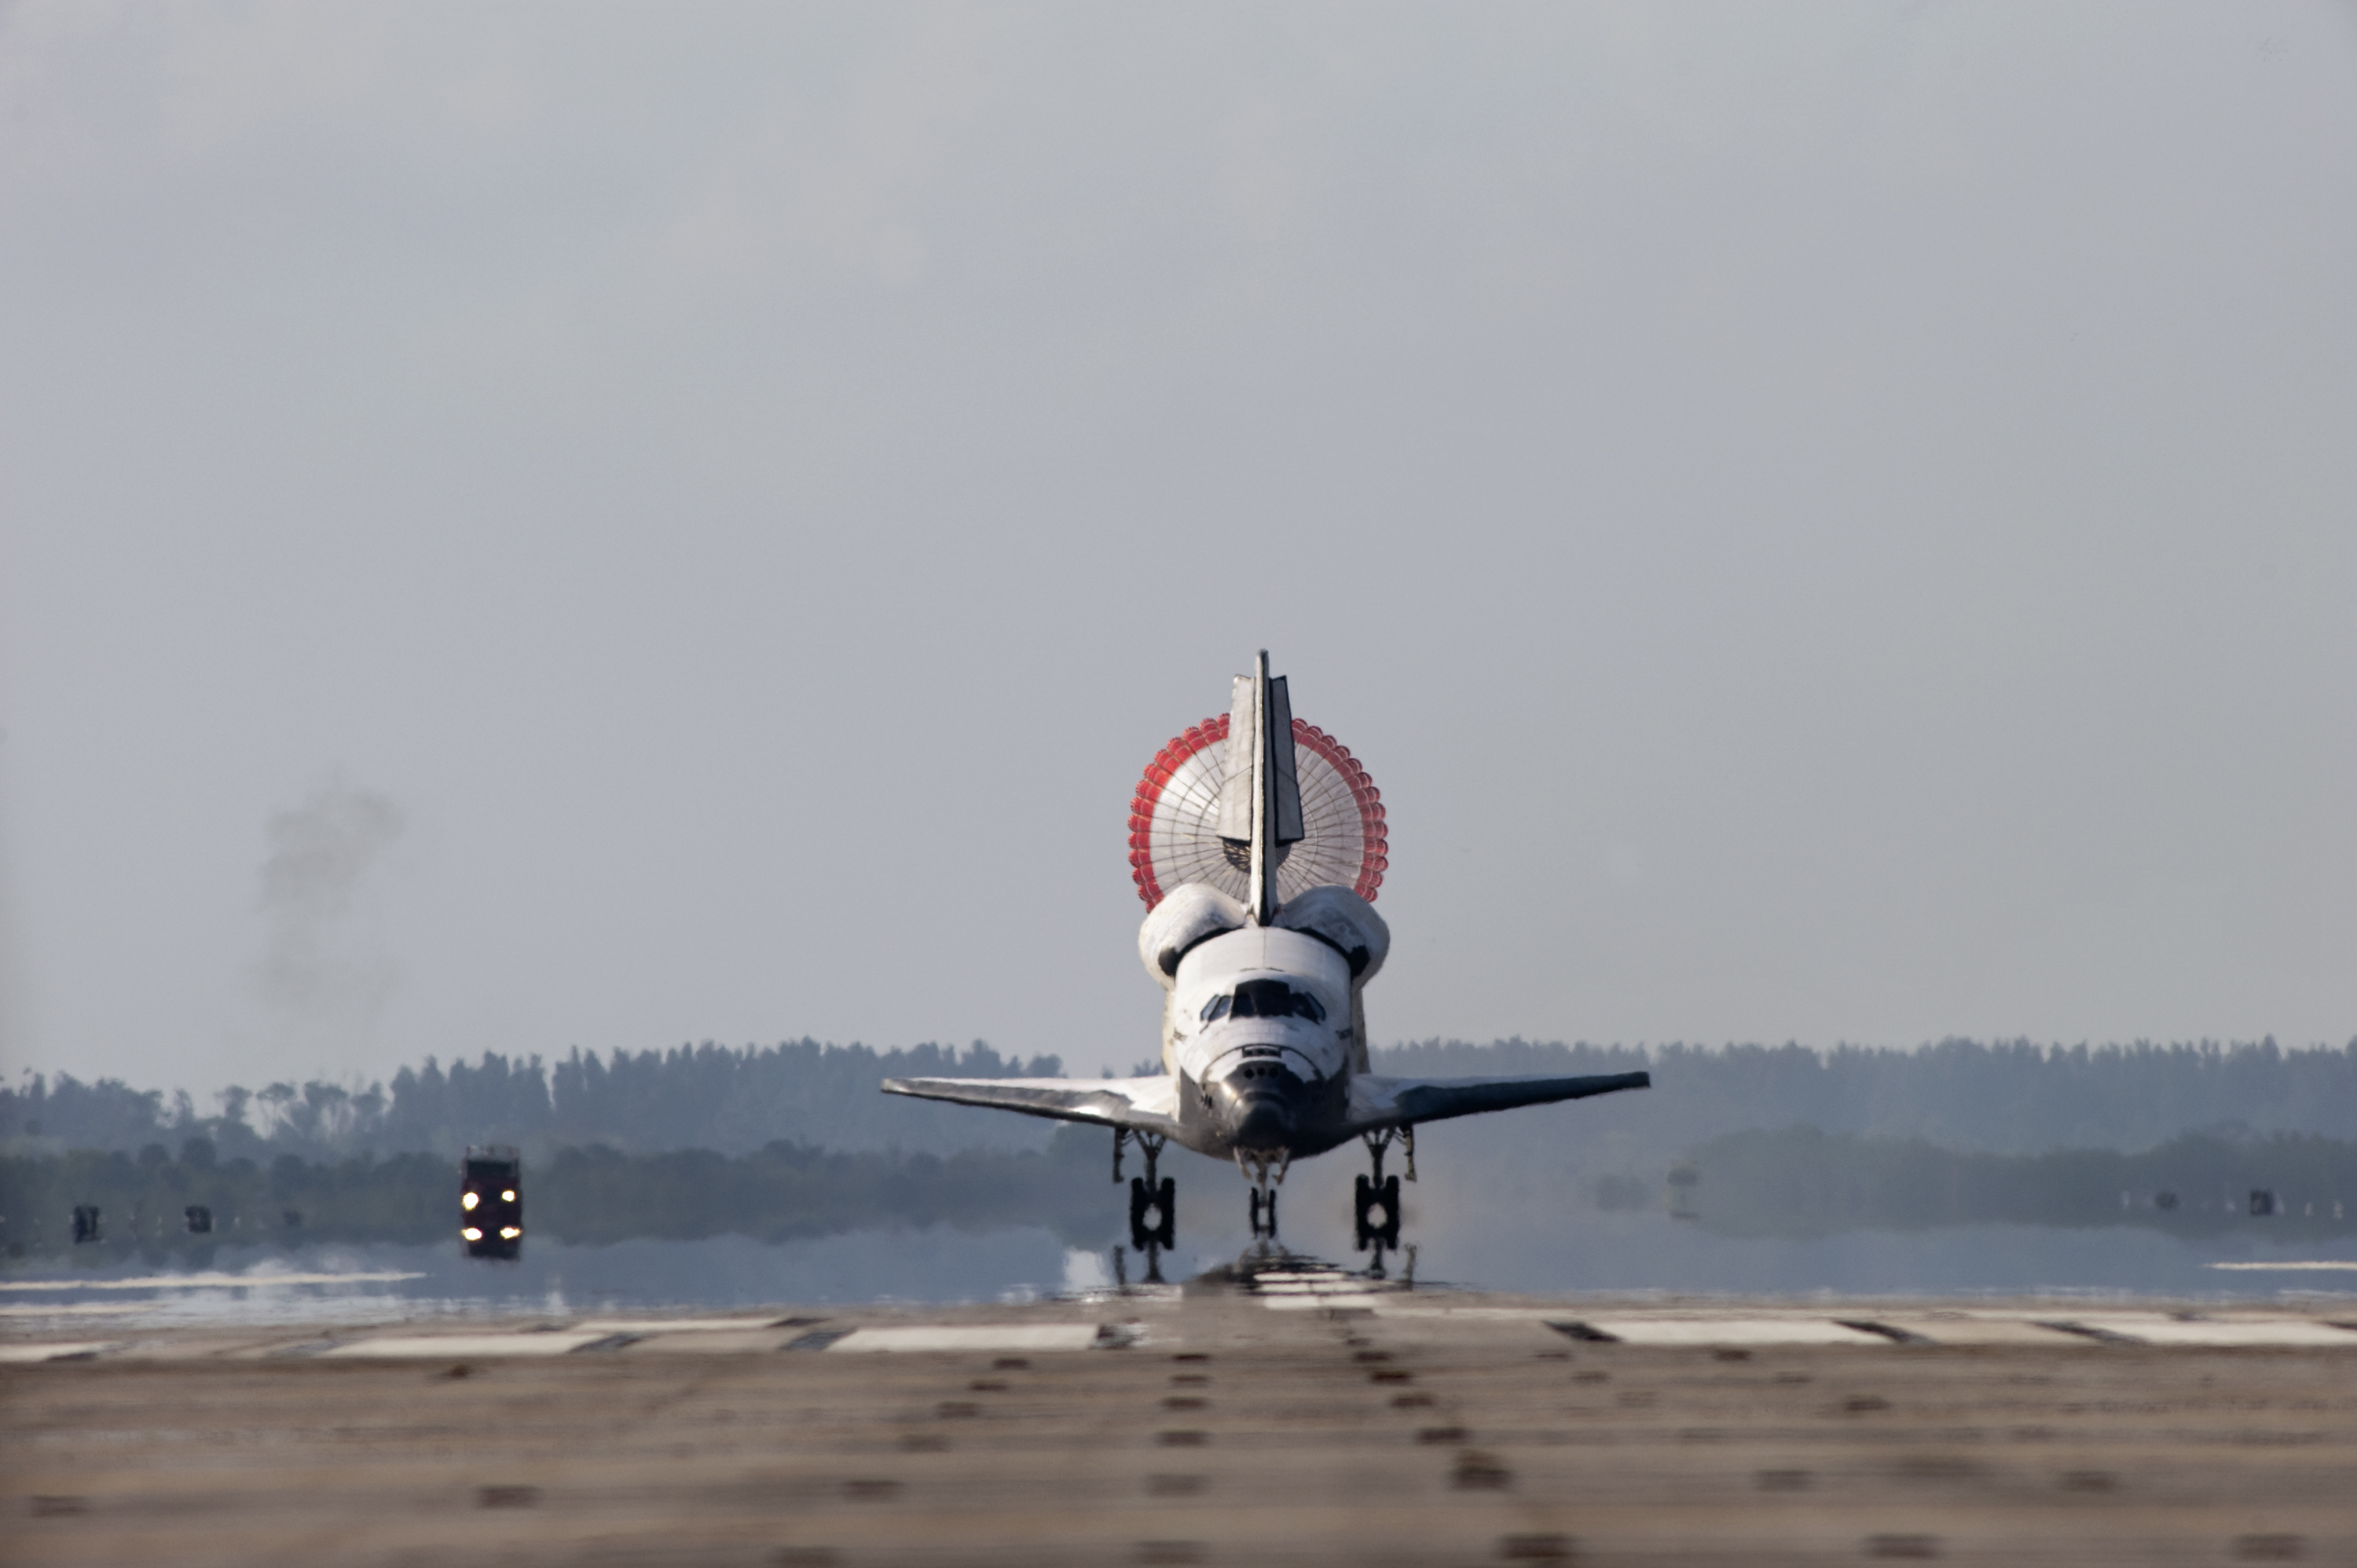 space shuttle landing apk - photo #35